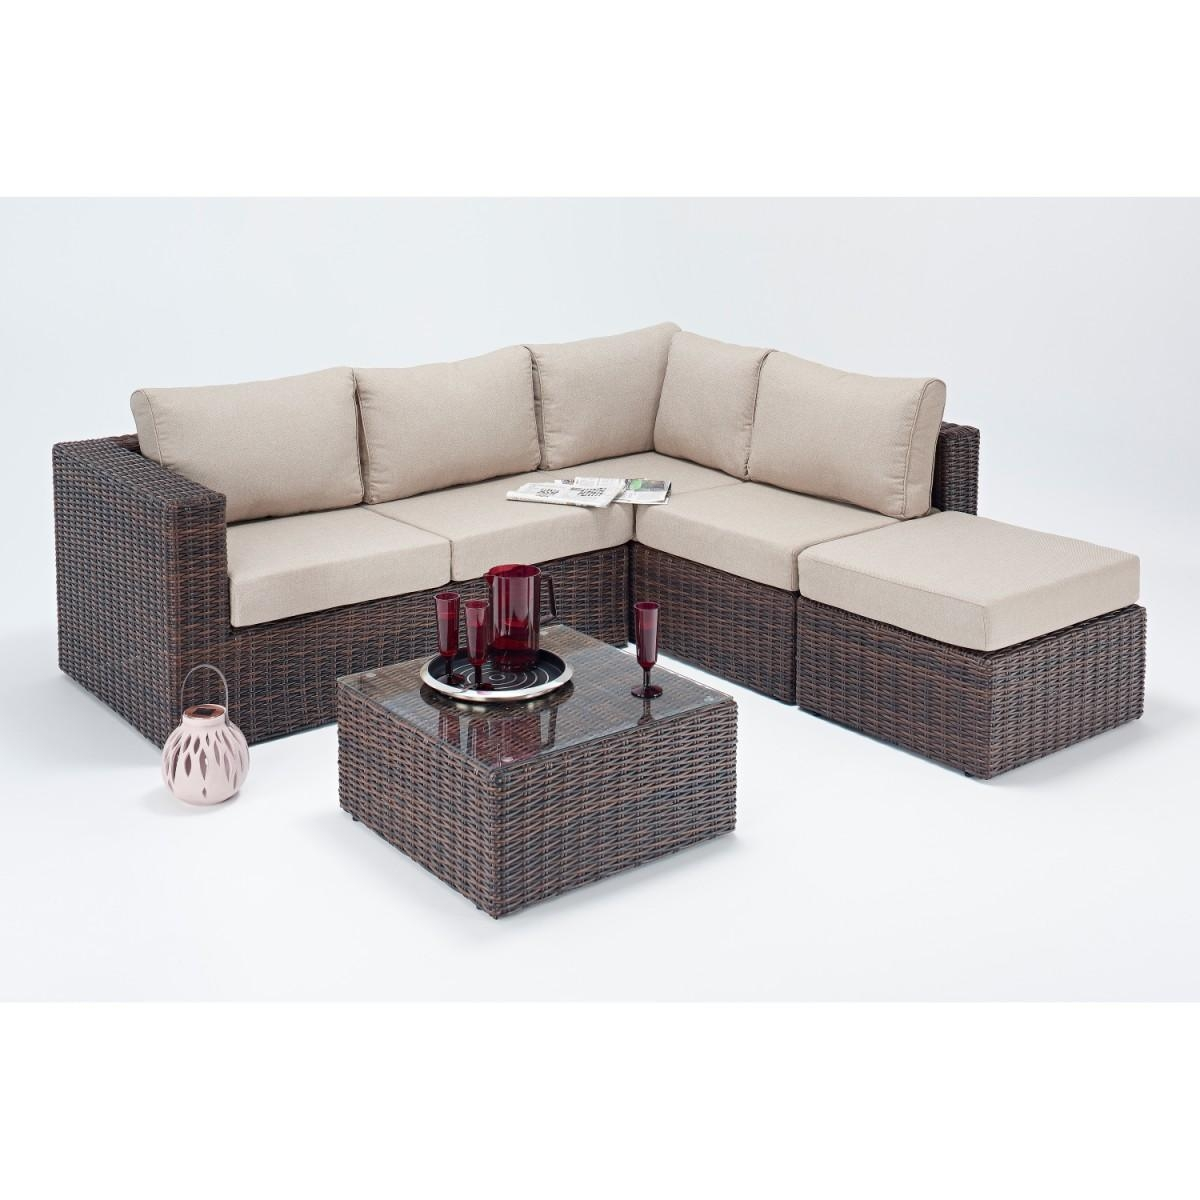 Sofas : Amazing Convertible Sofa Bed Cheap Sofa Beds Sofa Couch With Sofa Corner Units (View 5 of 24)